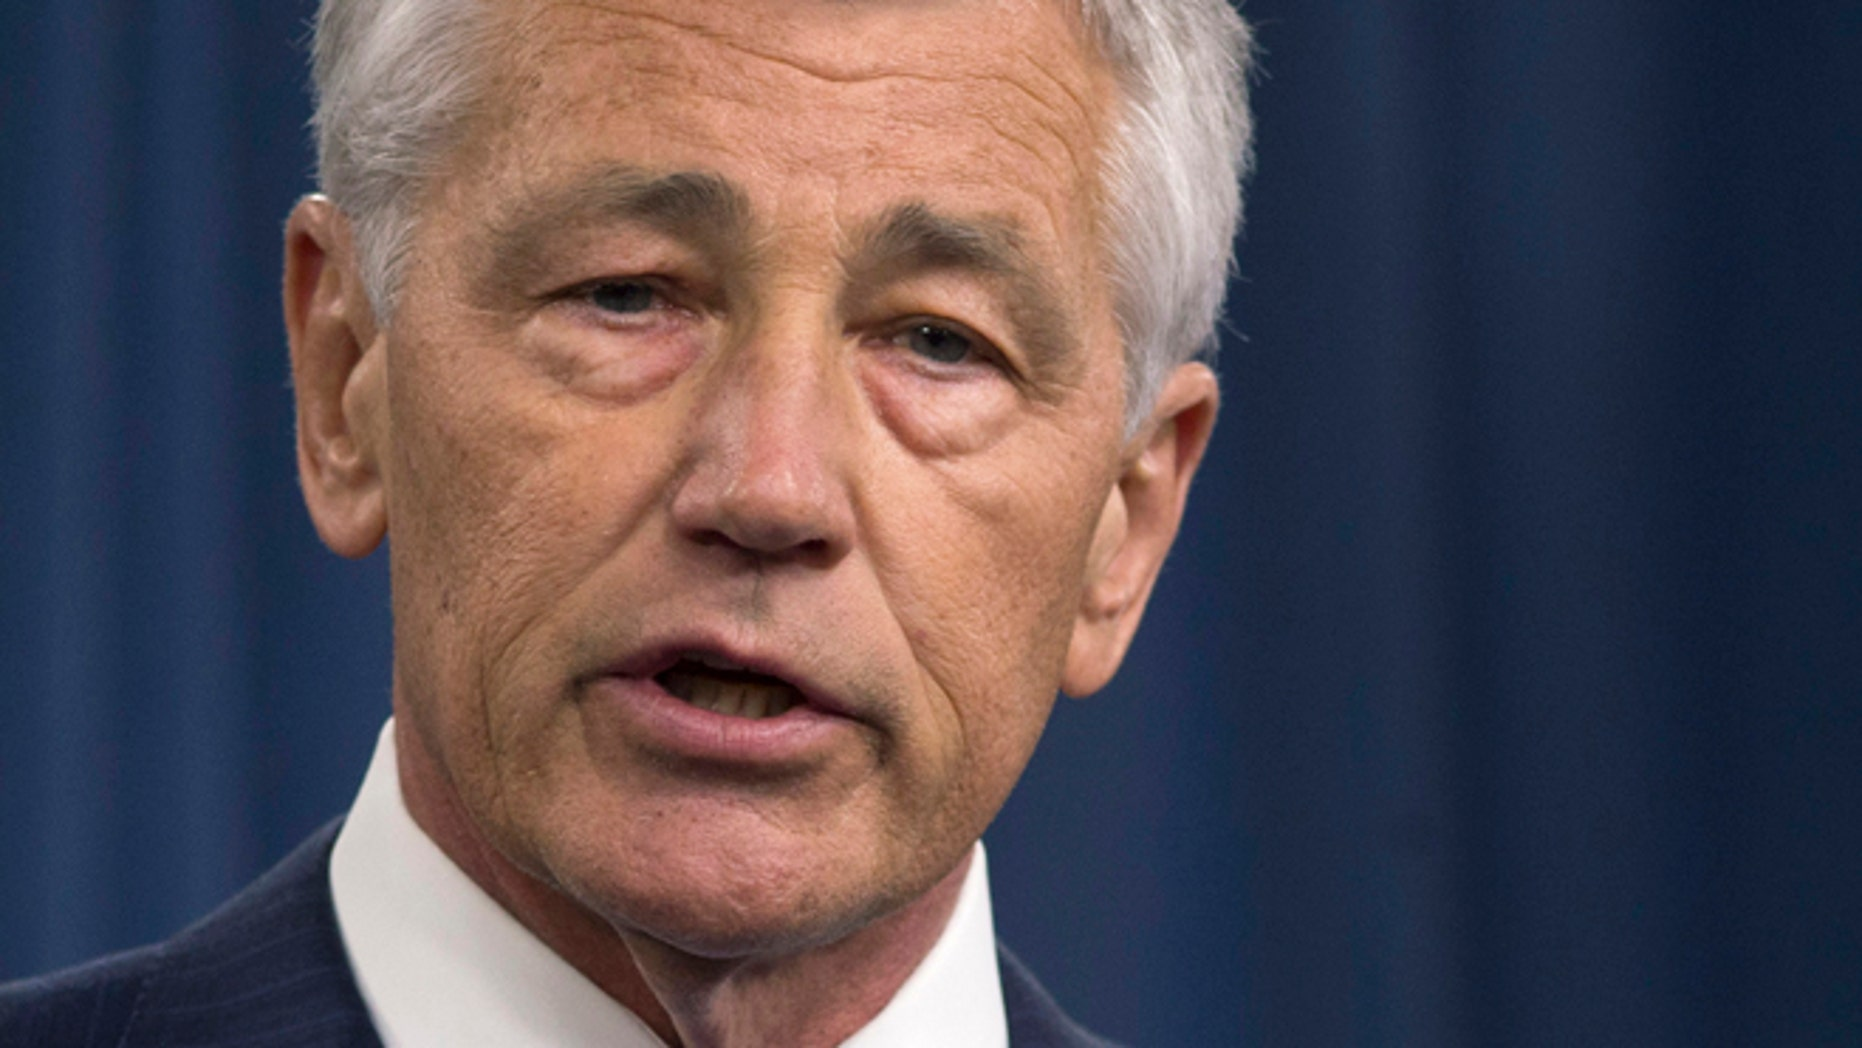 FILE - In this March 1, 2013 file photo, Defense Secretary Chuck Hagel speaks during a news conference at the Pentagon.